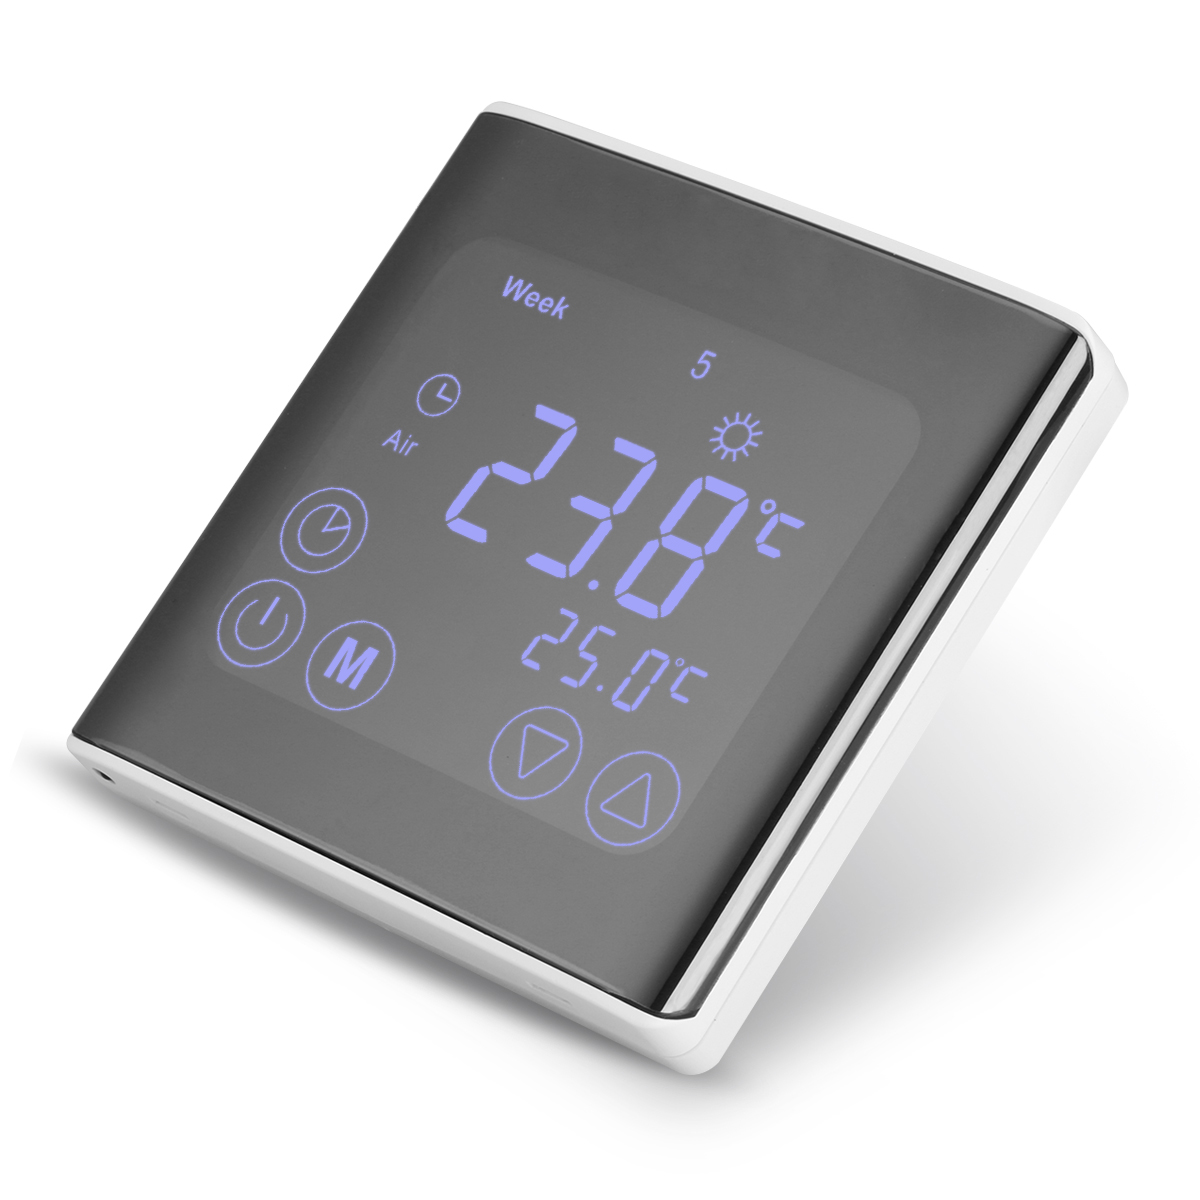 BYC17.GH3 LCD Thermostat Smart Digital Touch Screen Temperatur Control